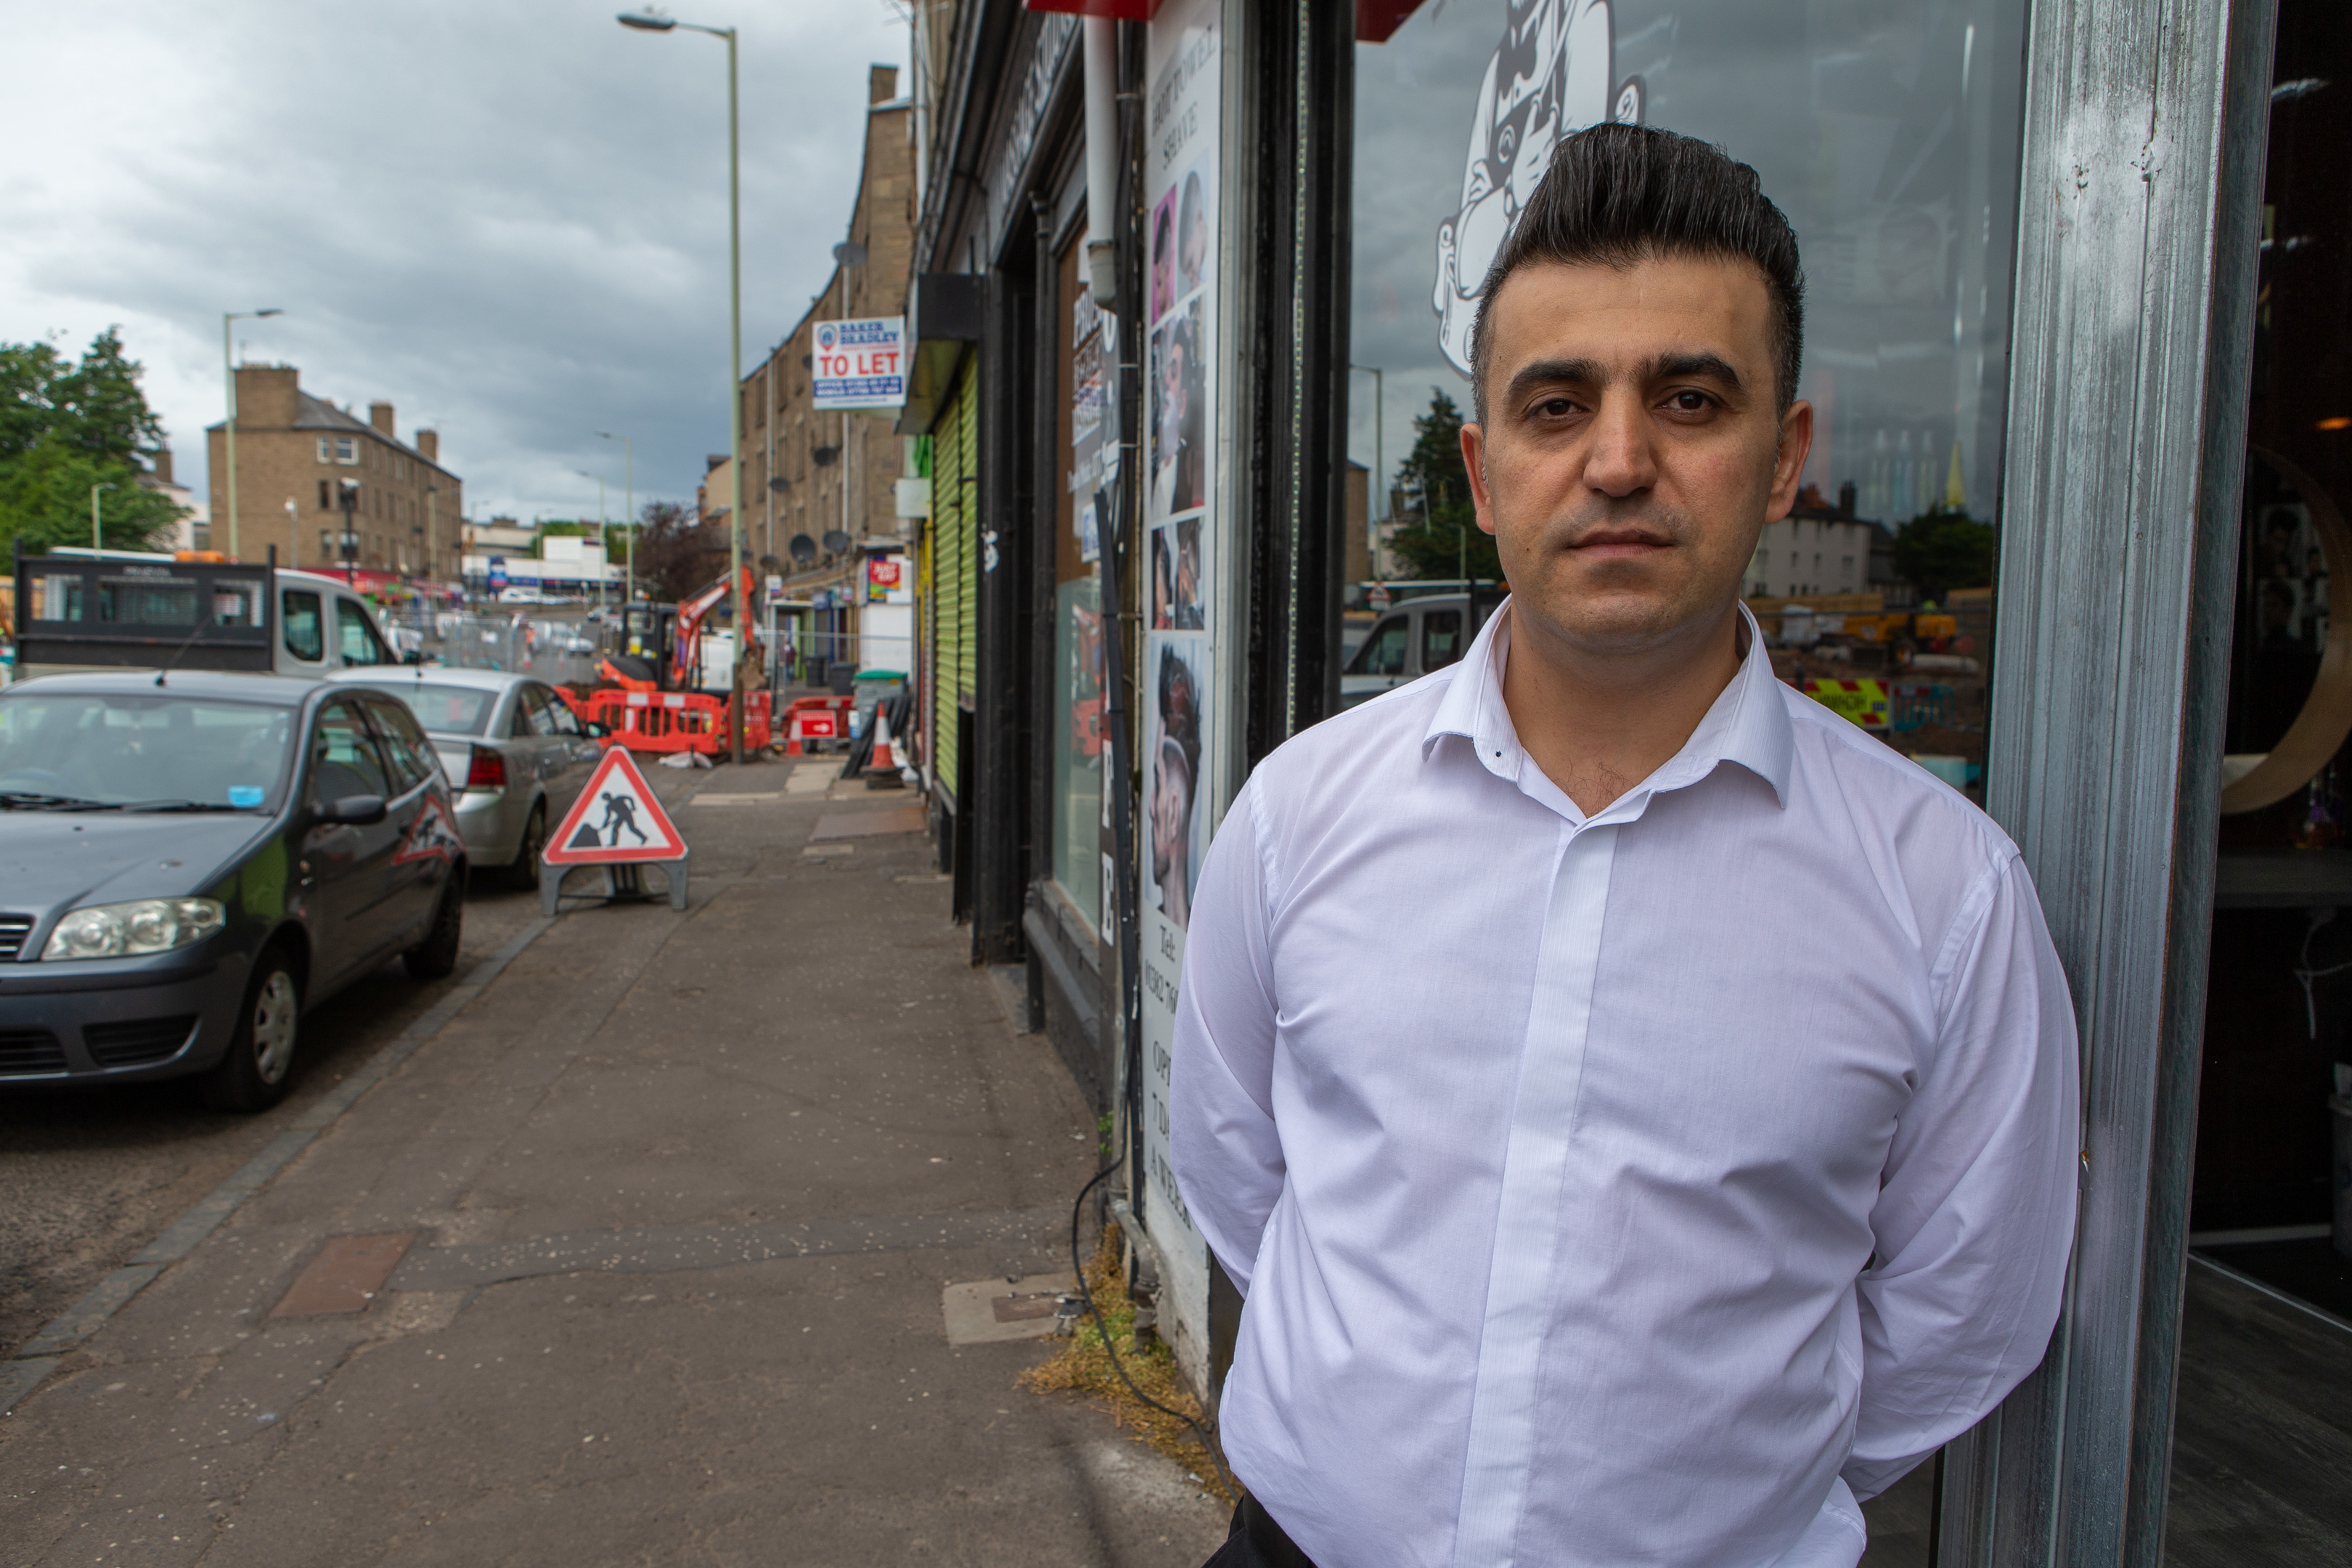 Yousif outside his barber's shop on Strathmartine Road.